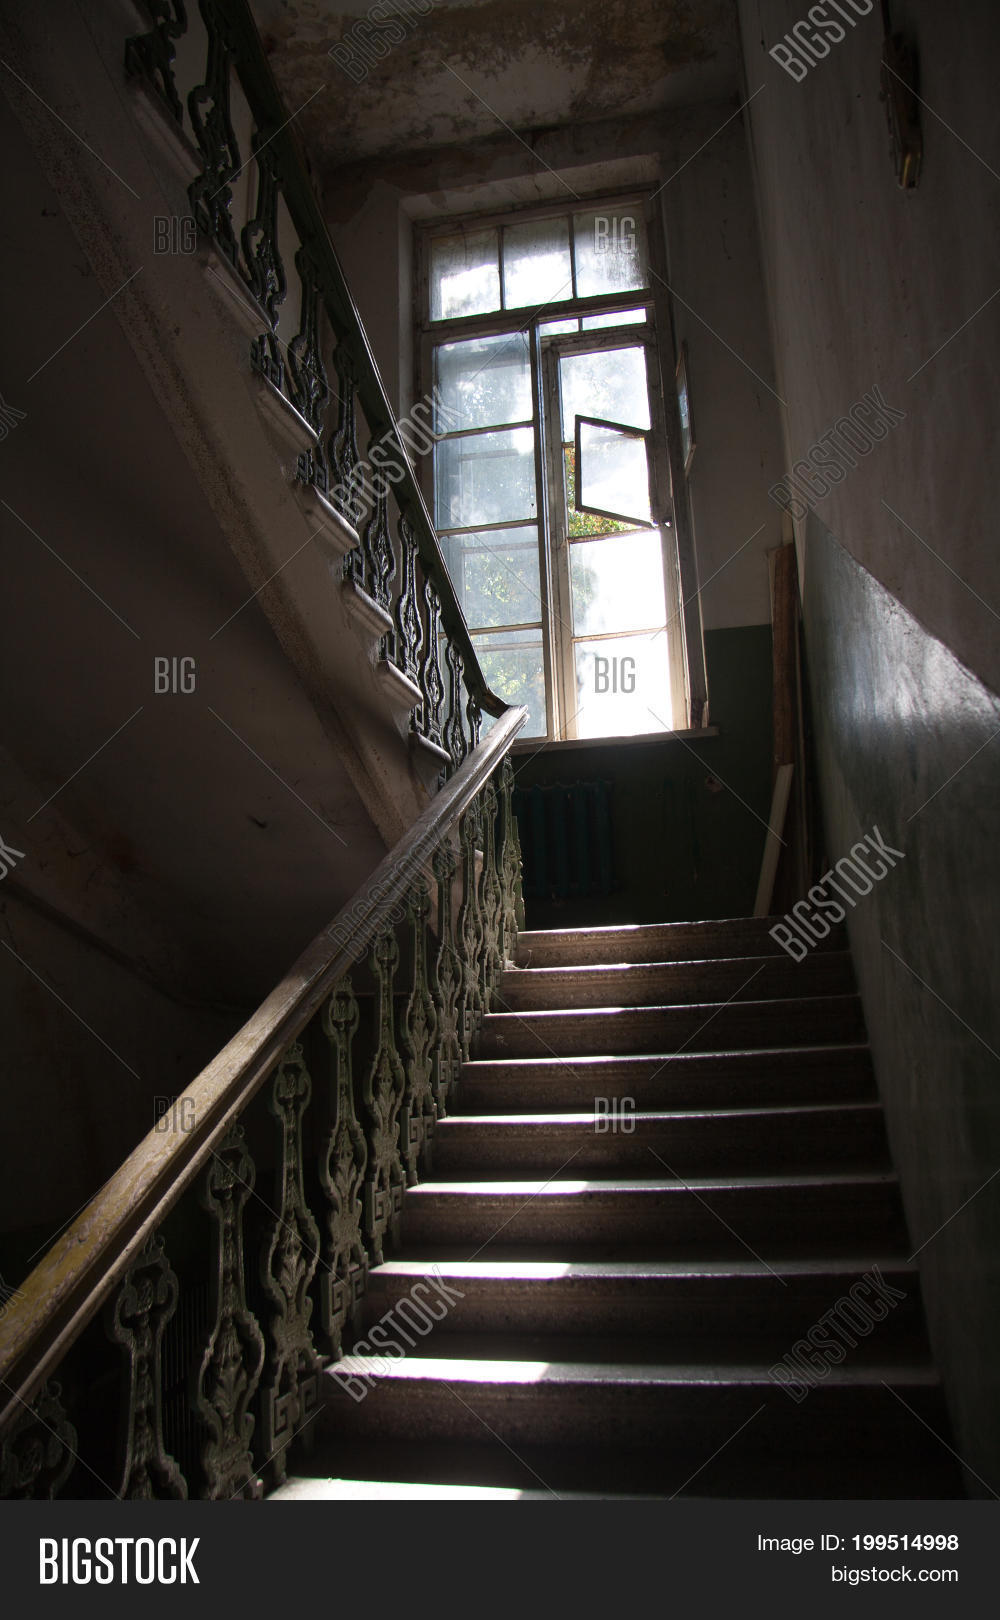 Dark Vintage Staircase Interior In Old Building, Stair With Forged Railing,  Big Window With